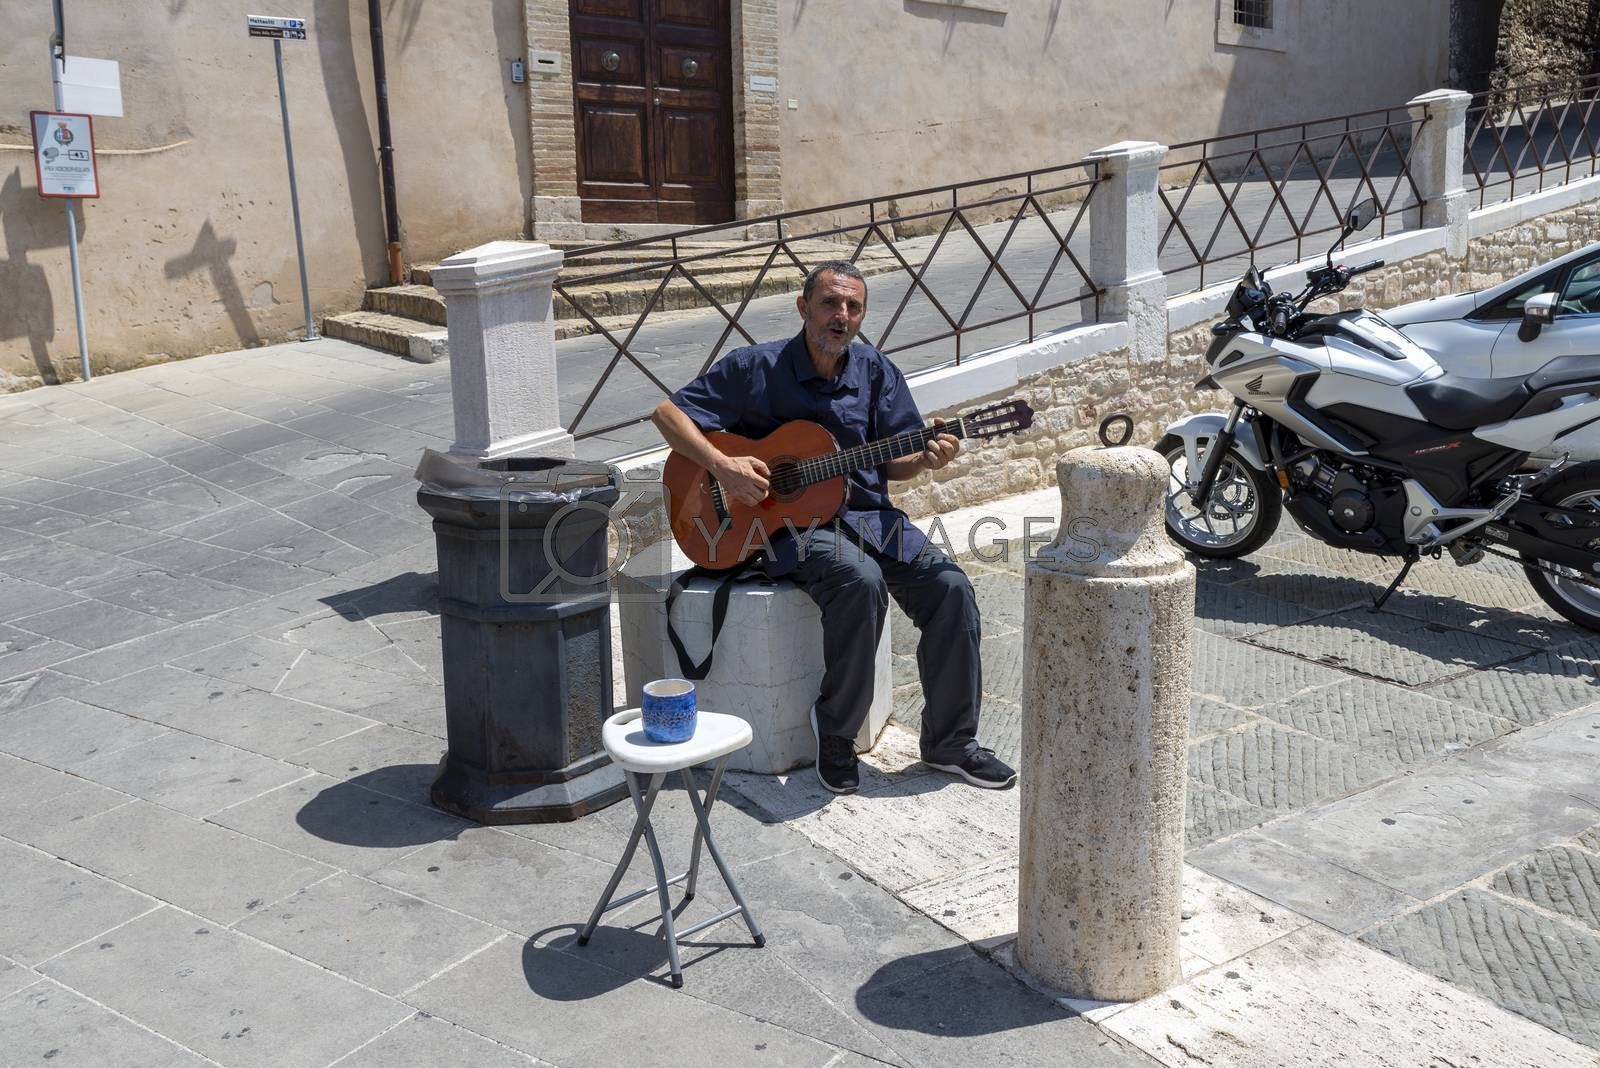 assisi,italy july 11 2020:a street artist with a guitar in the sun